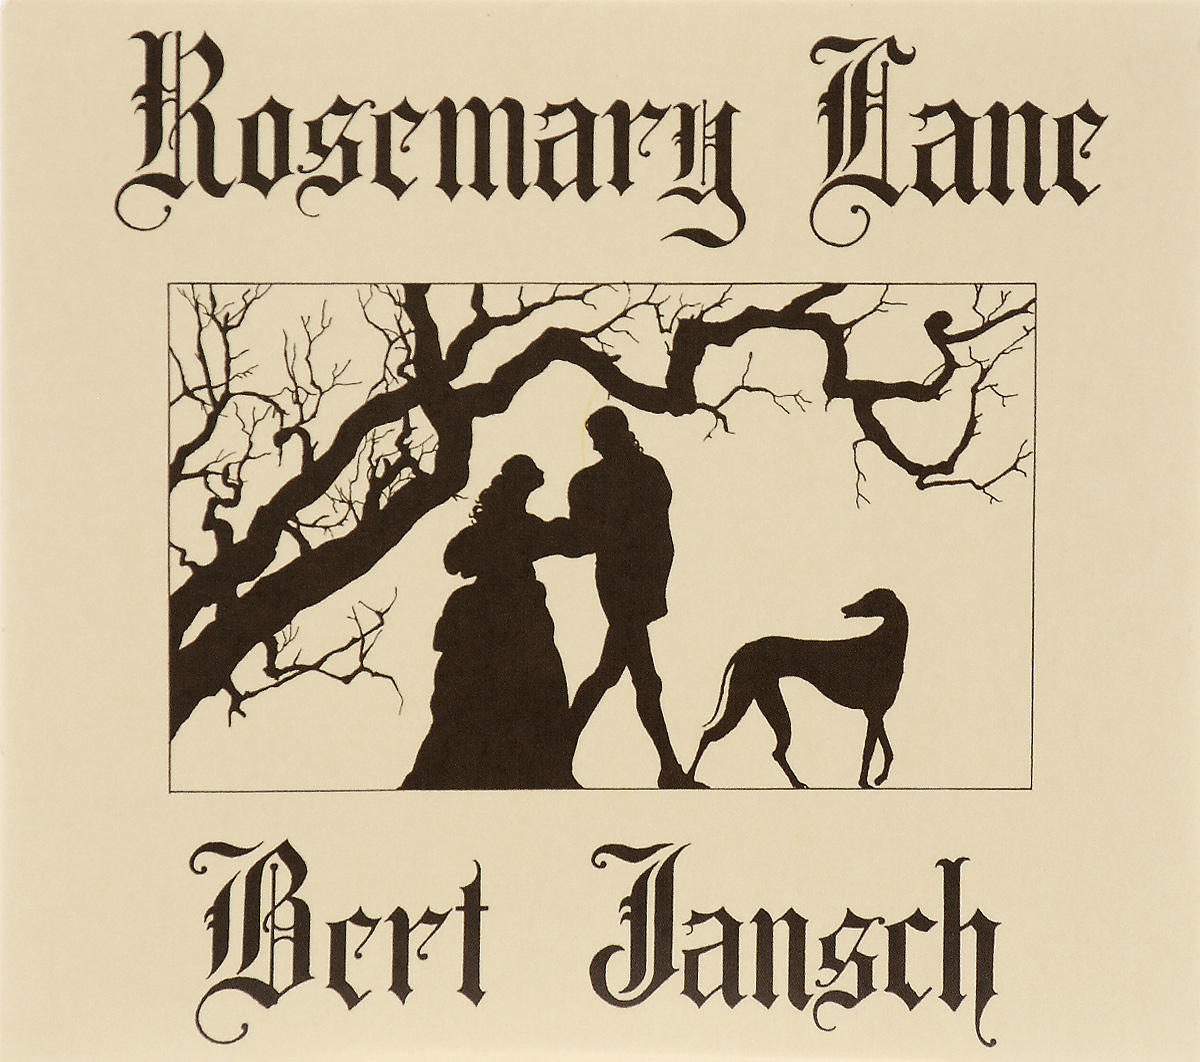 Берт Дженч Bert Jansch. Rosemary Lane берт дженч bert jansch nicola